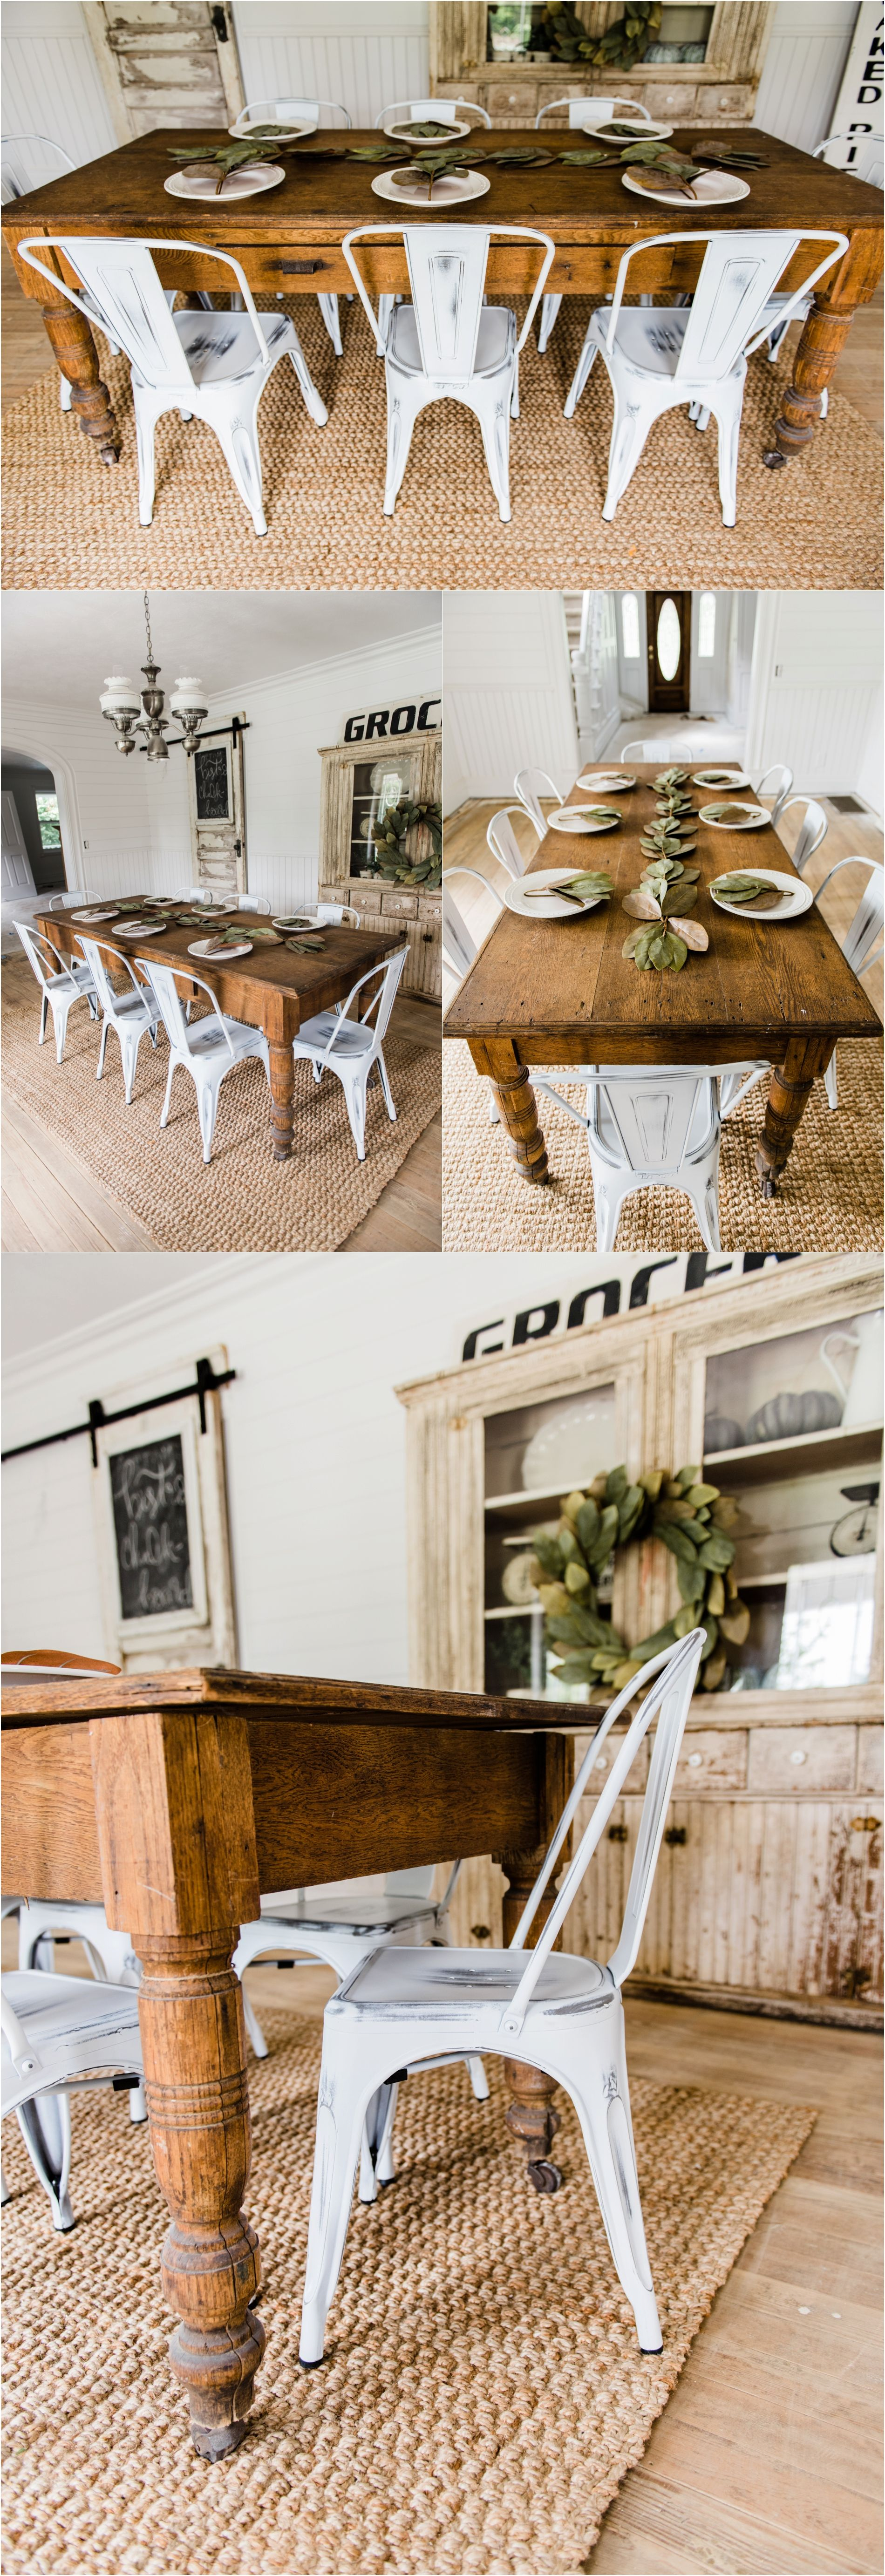 New Farmhouse Dining Chairs Farmhouse dining chairs